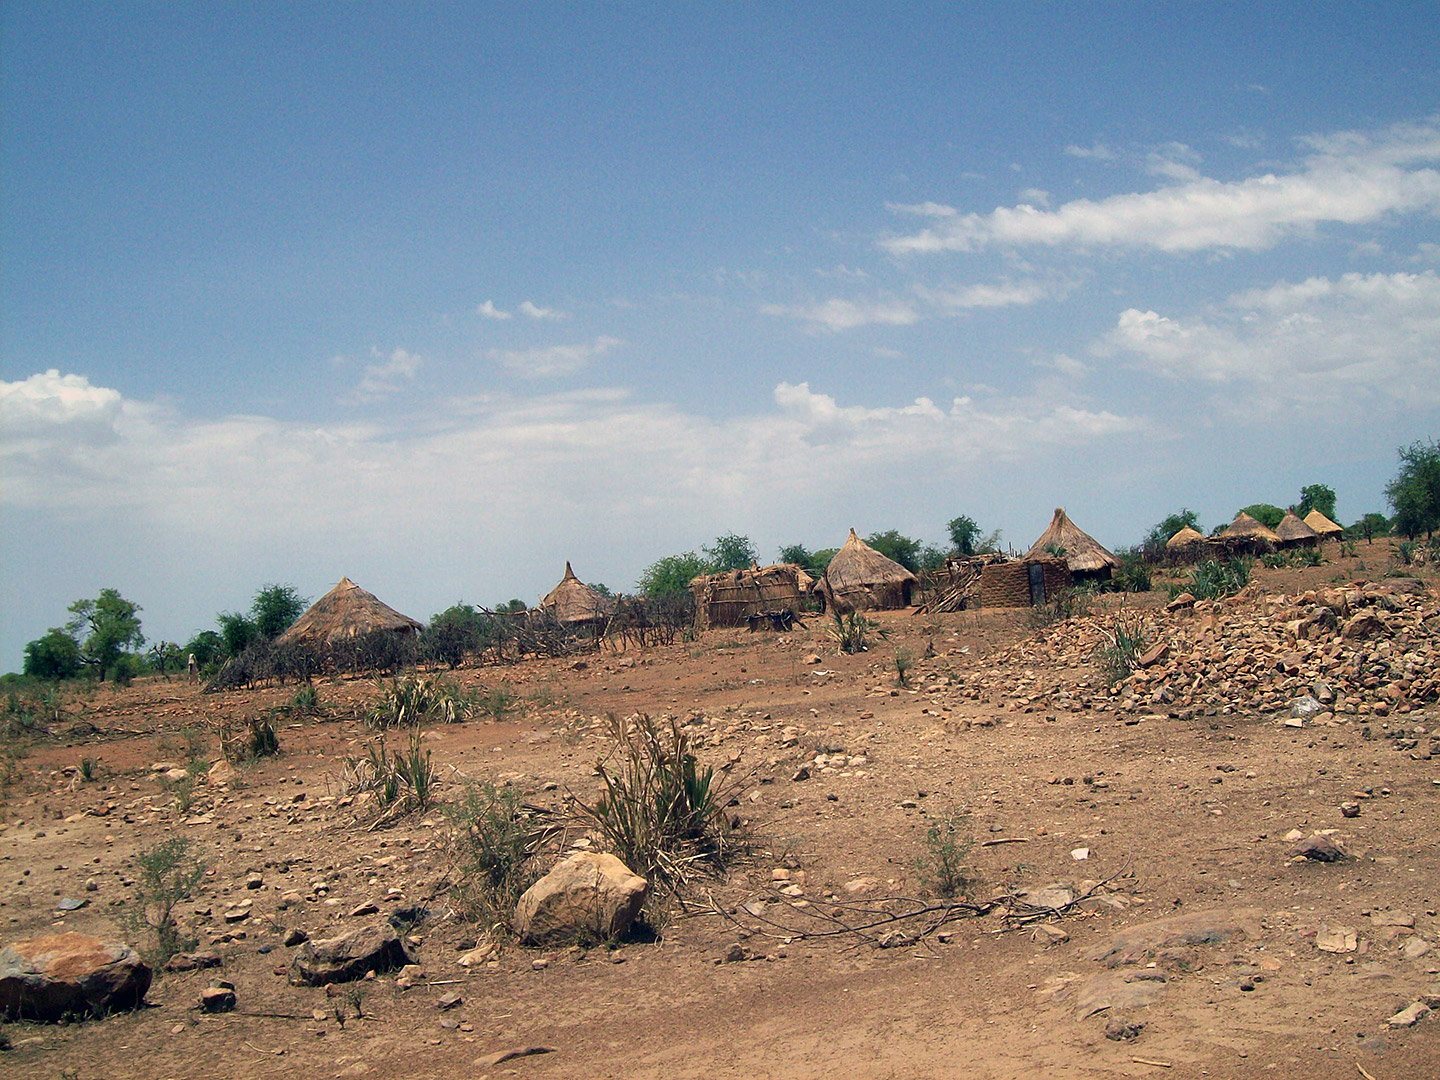 Sudanese village. Courtesy Yaunis Andini